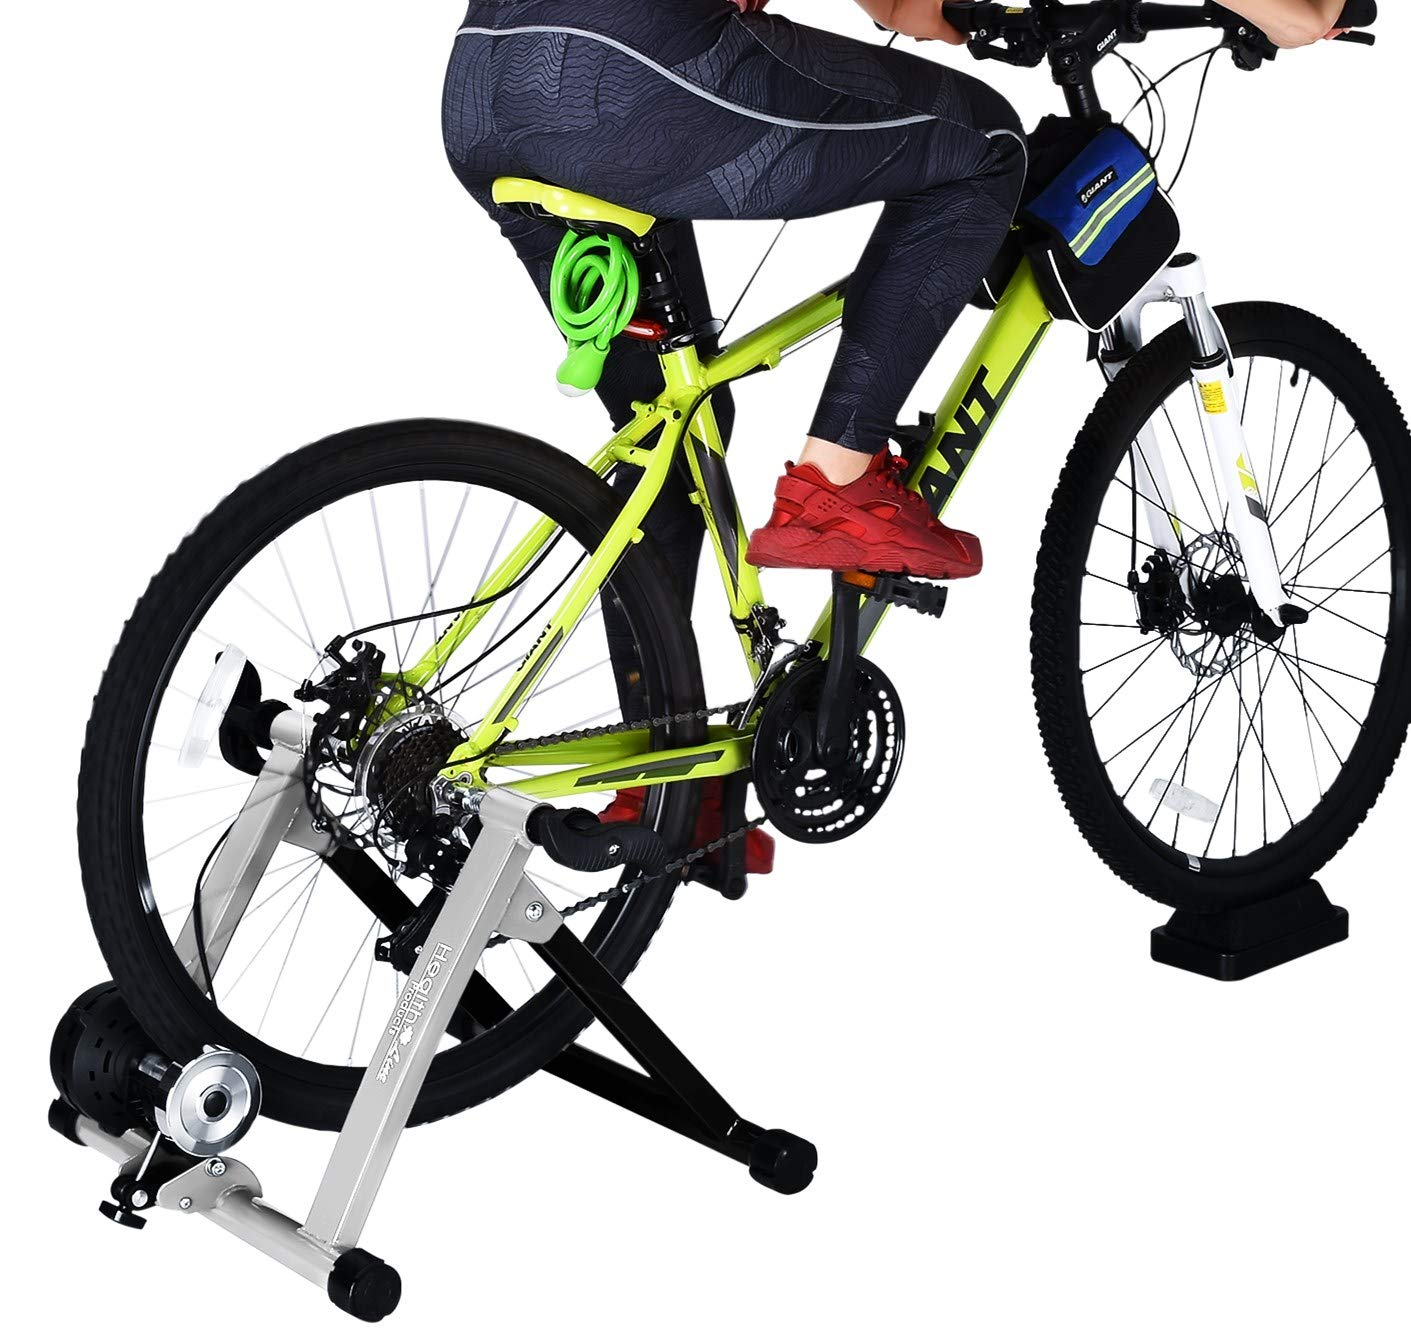 HEALTH LINE PRODUCT Indoor Bike Trainer,Bike Stationary Riding Stand Fits 26-28'' 700c Road/Mountain Bike Adjustable 8 Levels Resistance Bike Riding Stand w Wheel Block & Quick Release